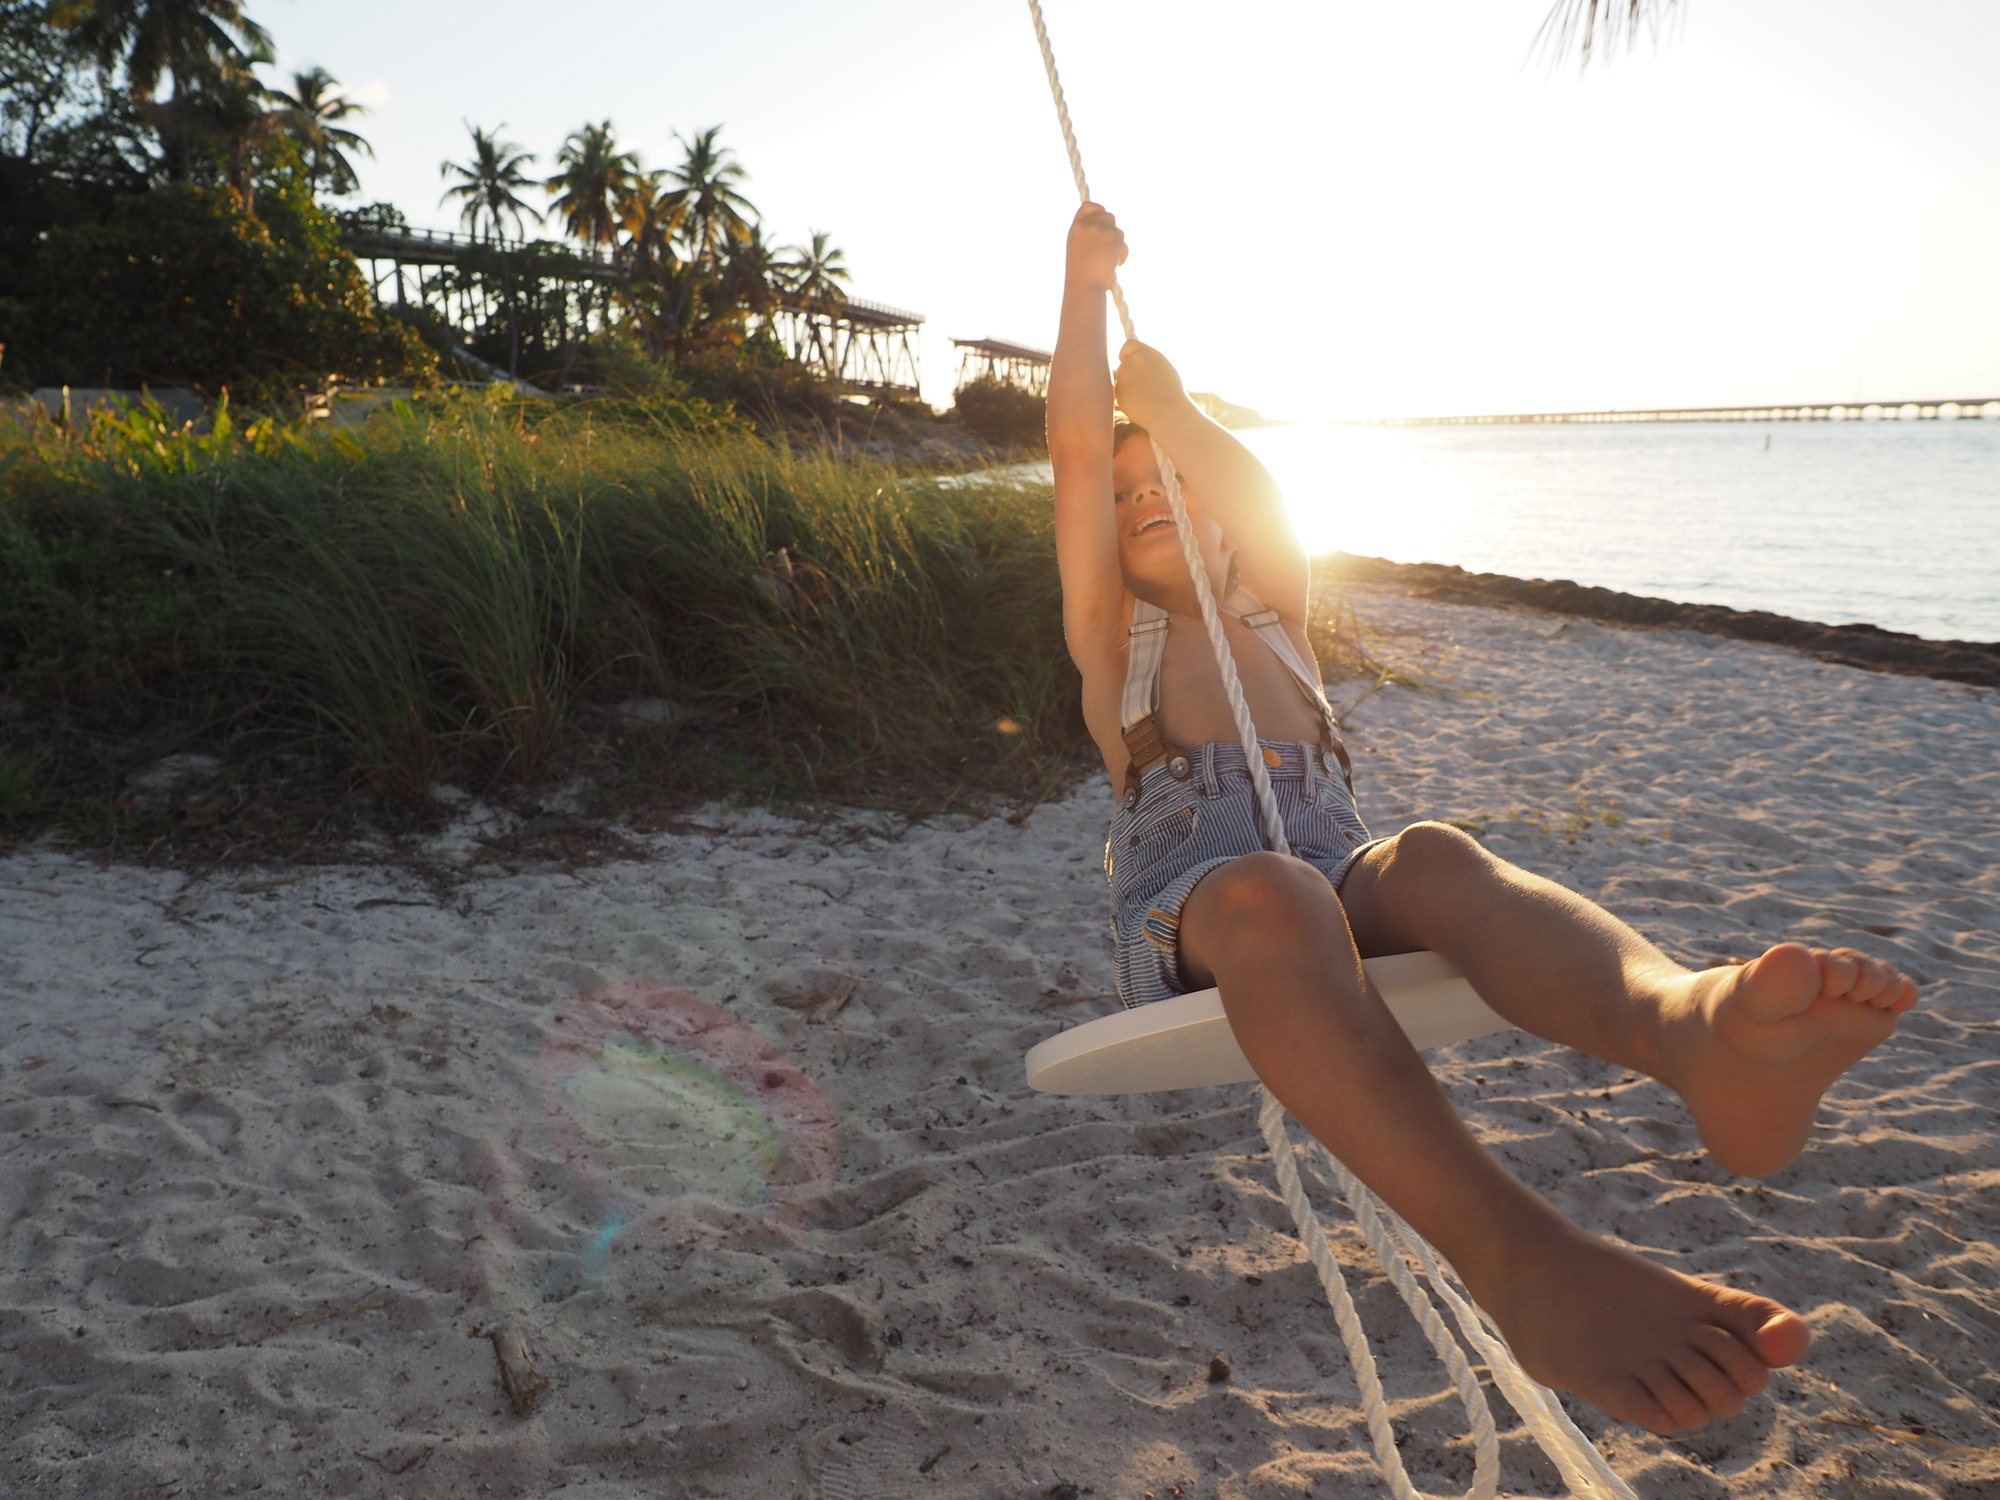 Child on swing on beach in the Florida Keys